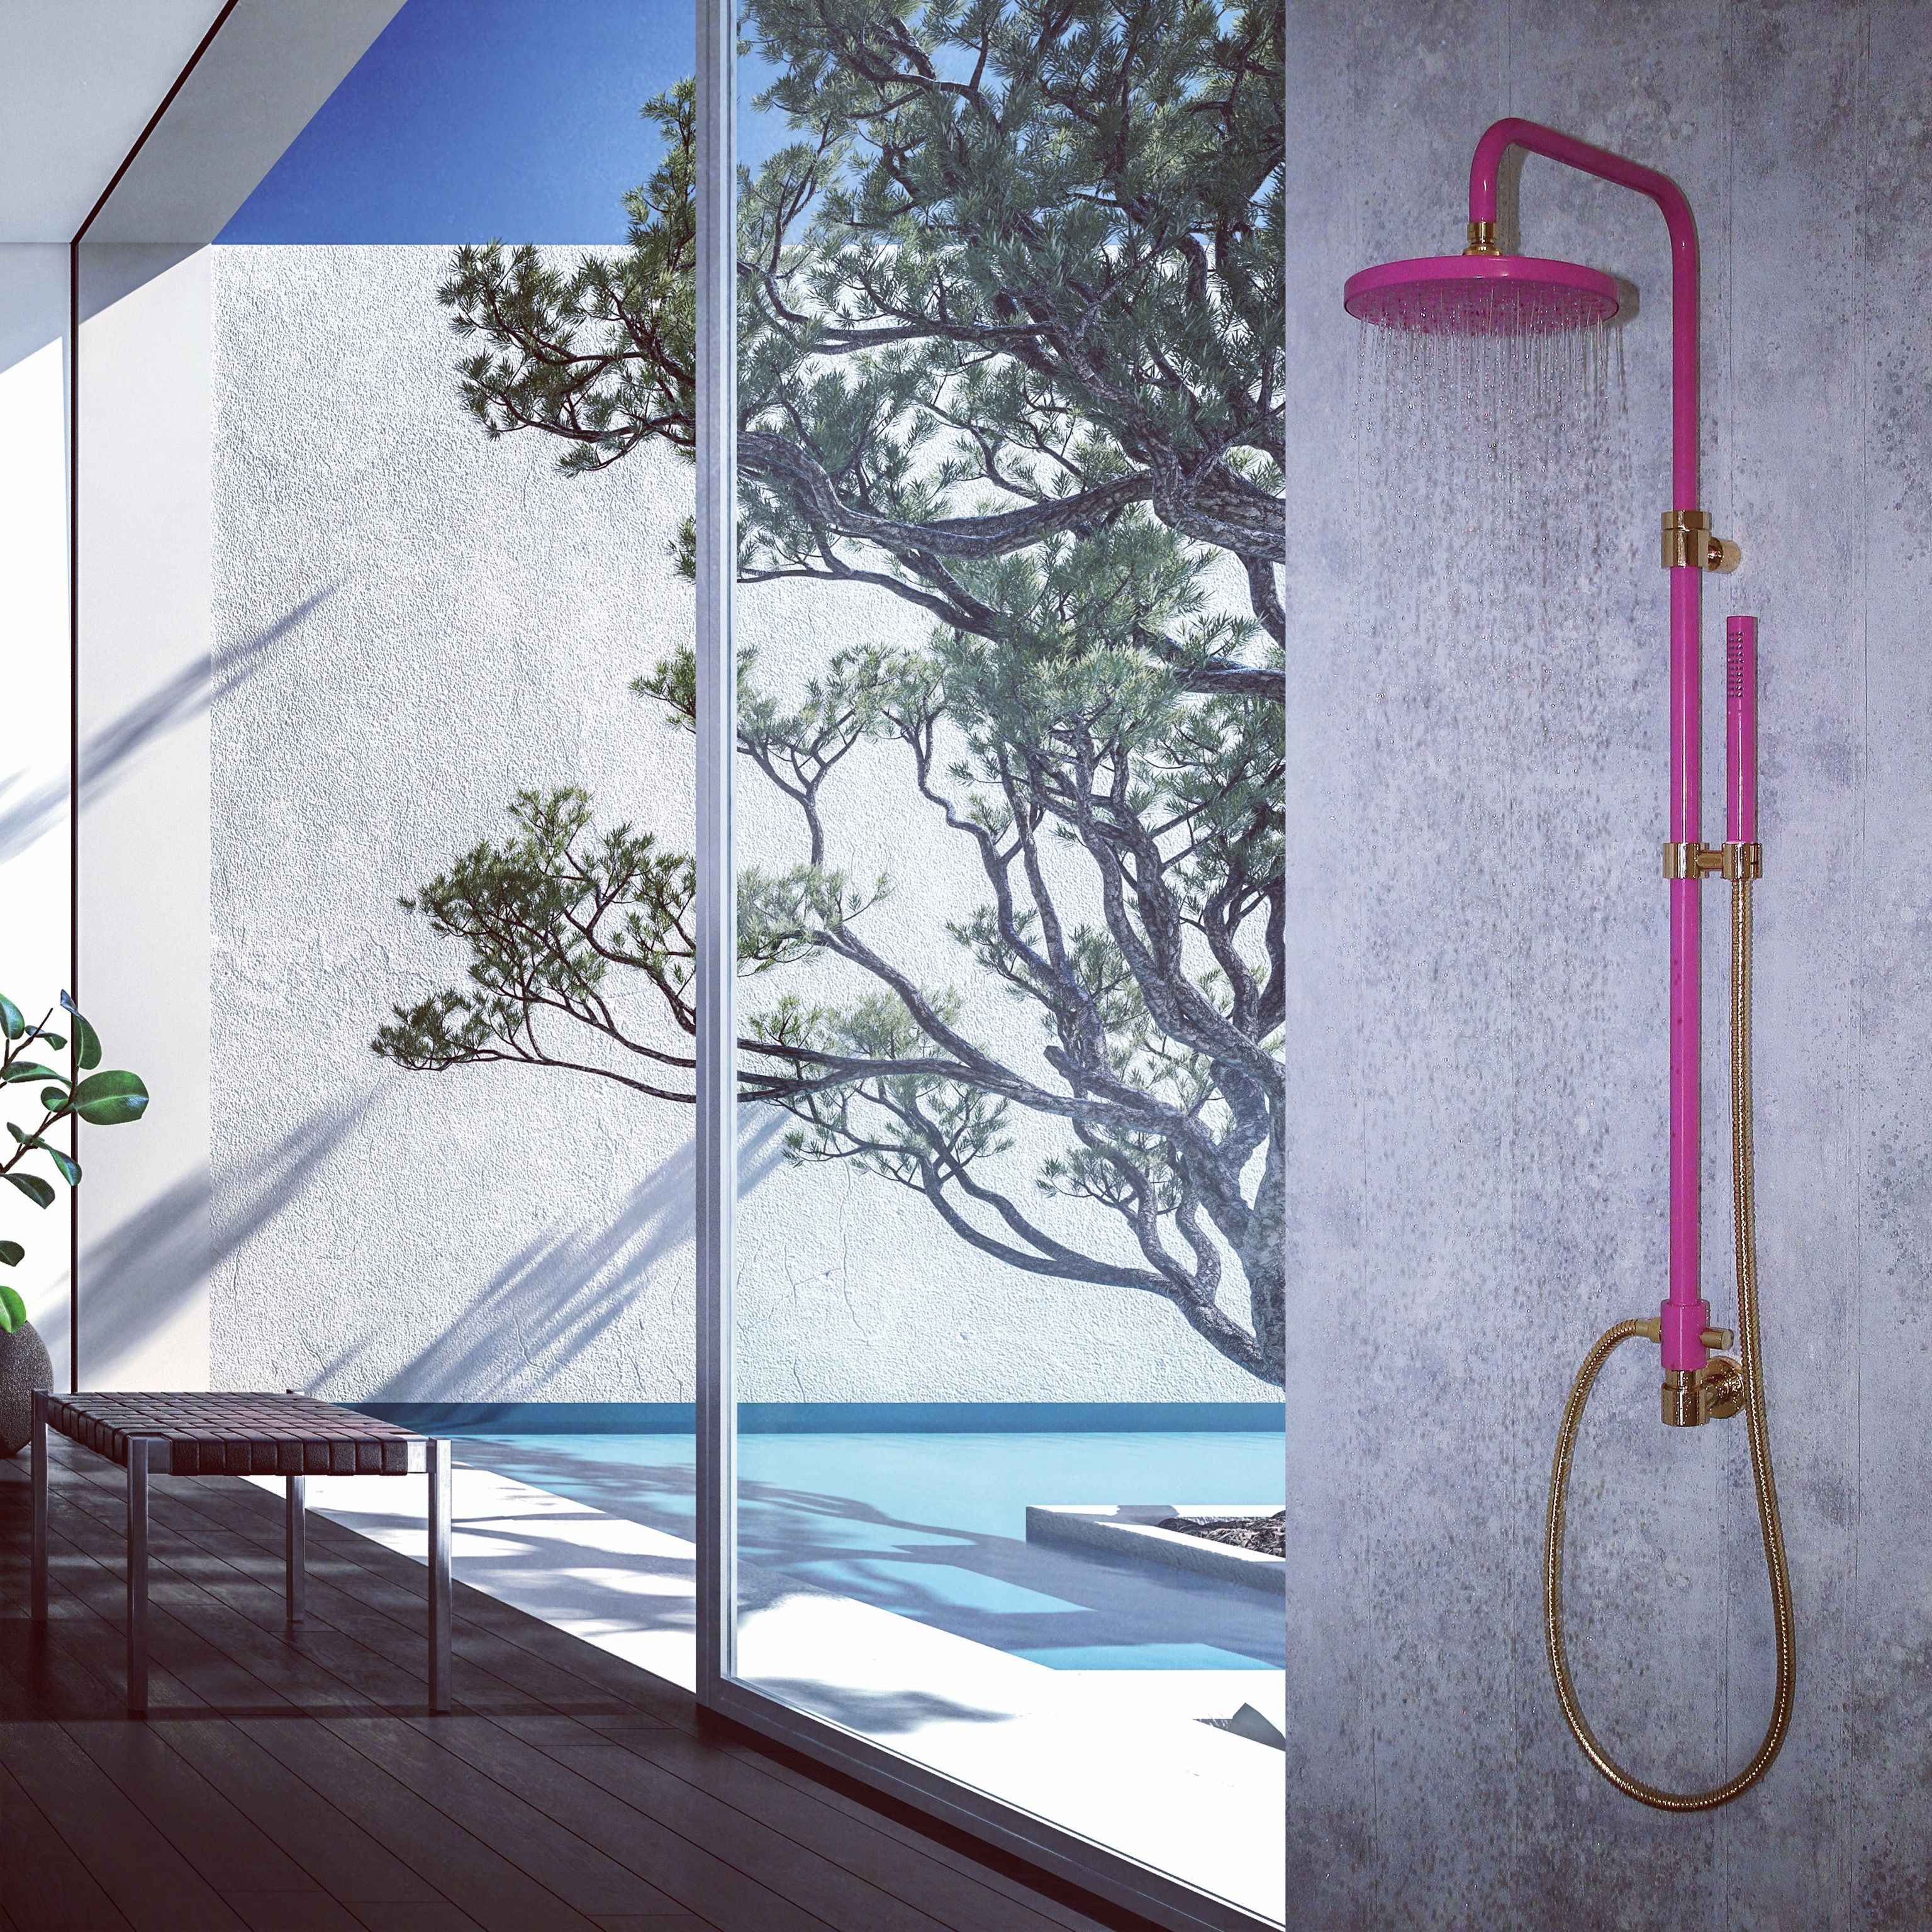 Pink is the new chrome - by VICARIO S.R.L. New complete shower kit ...